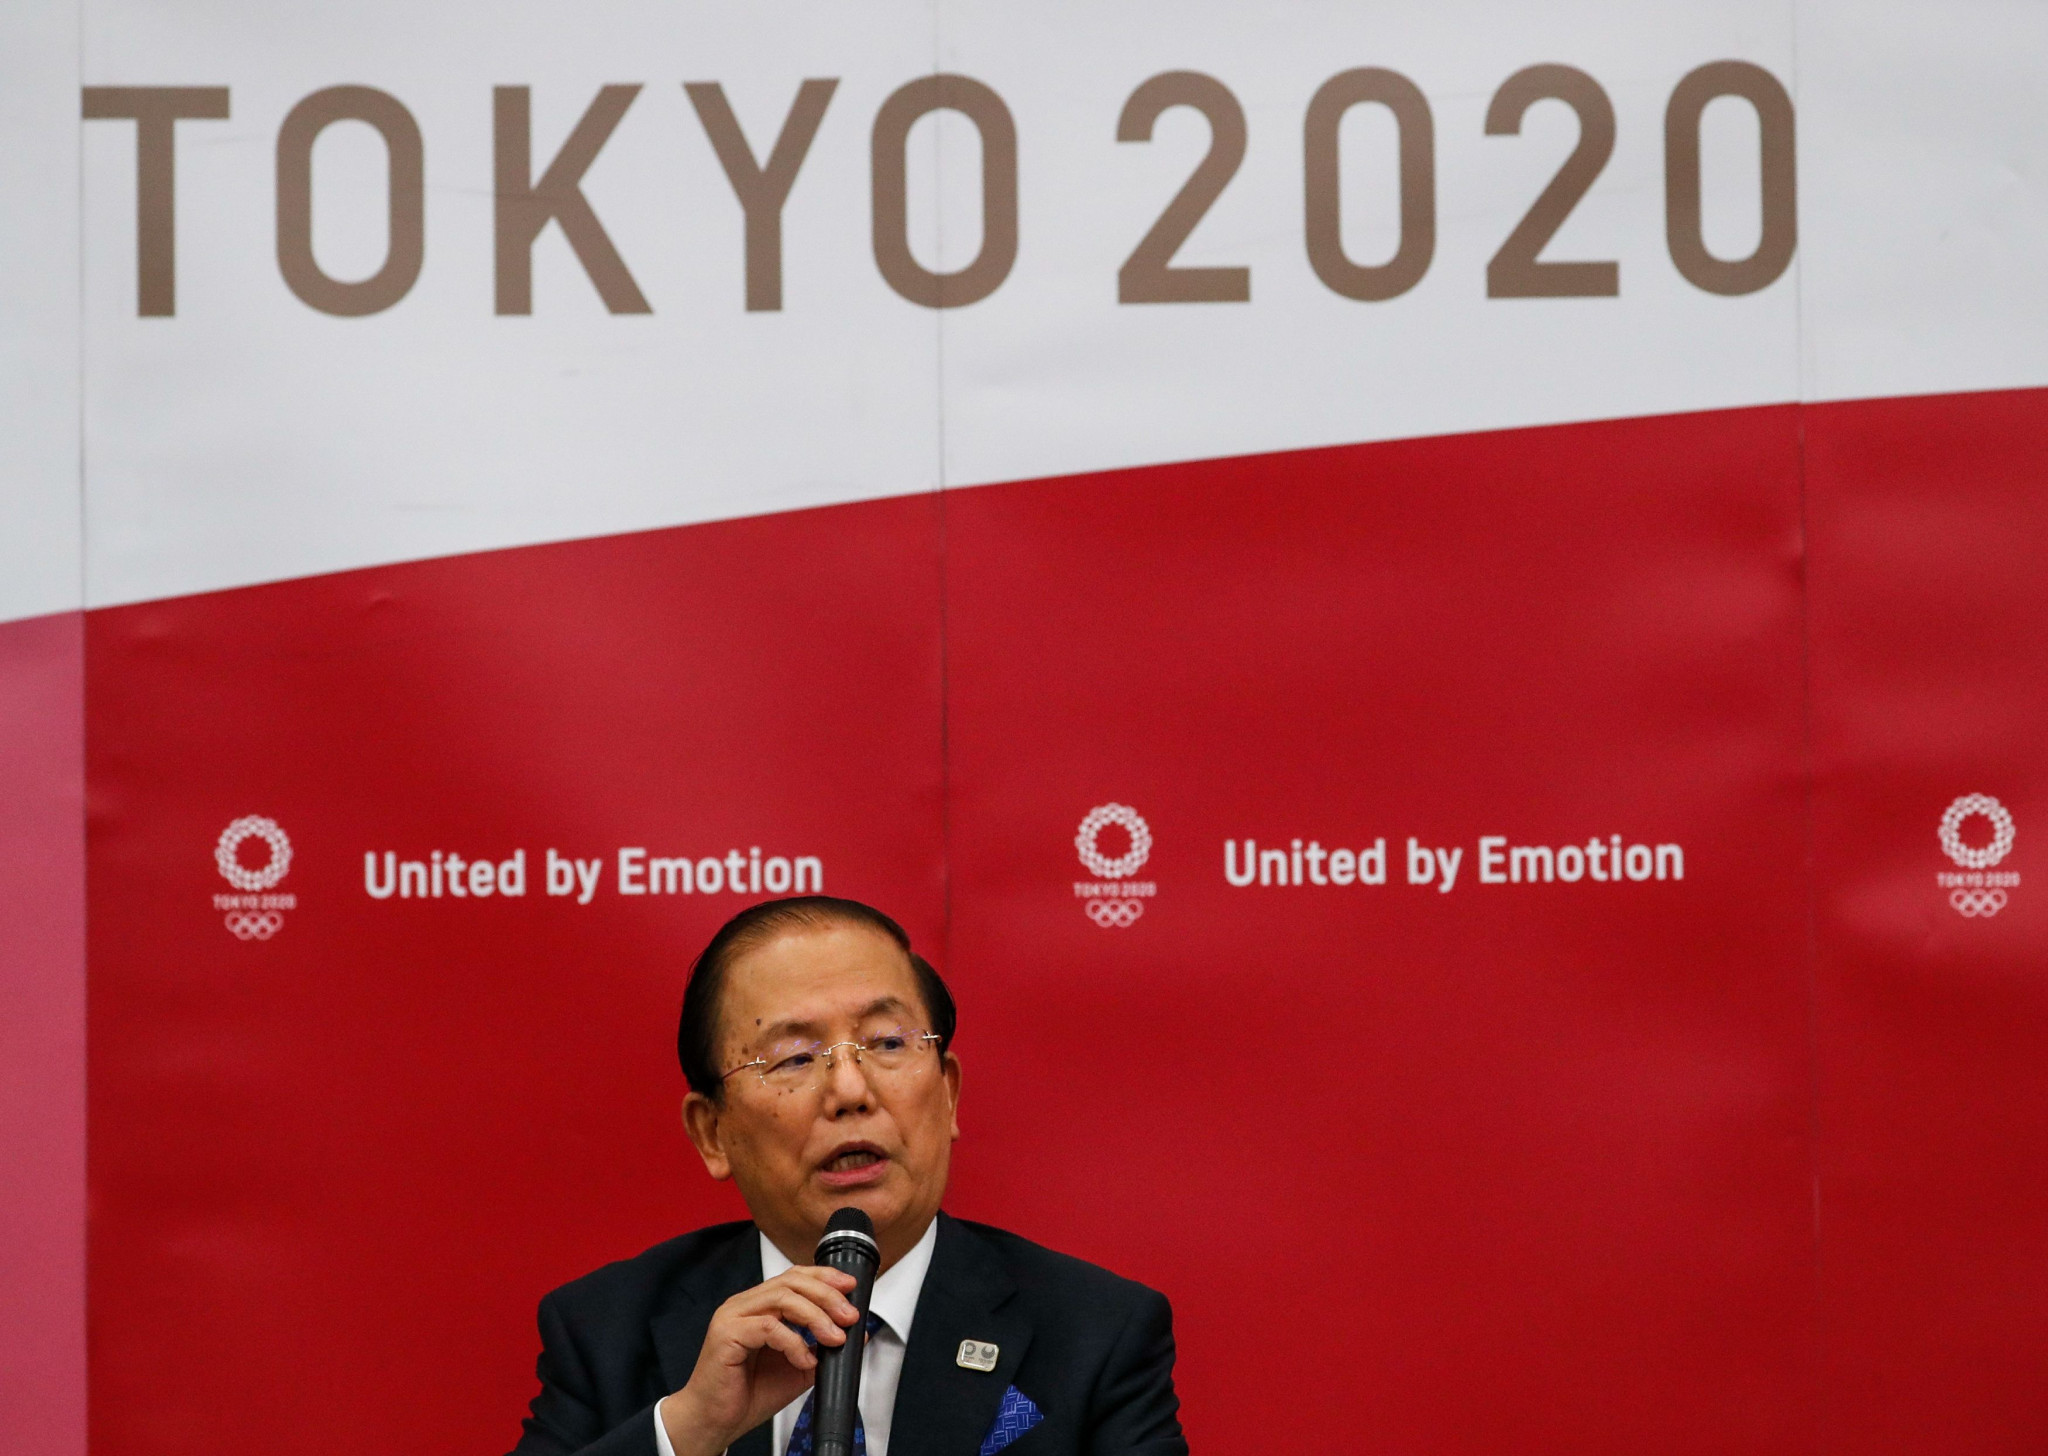 Tokyo 2020 chief executive Toshirō Mutō said recently that the Olympics now rescheduled to next summer because of the coronavirus pandemic will be a